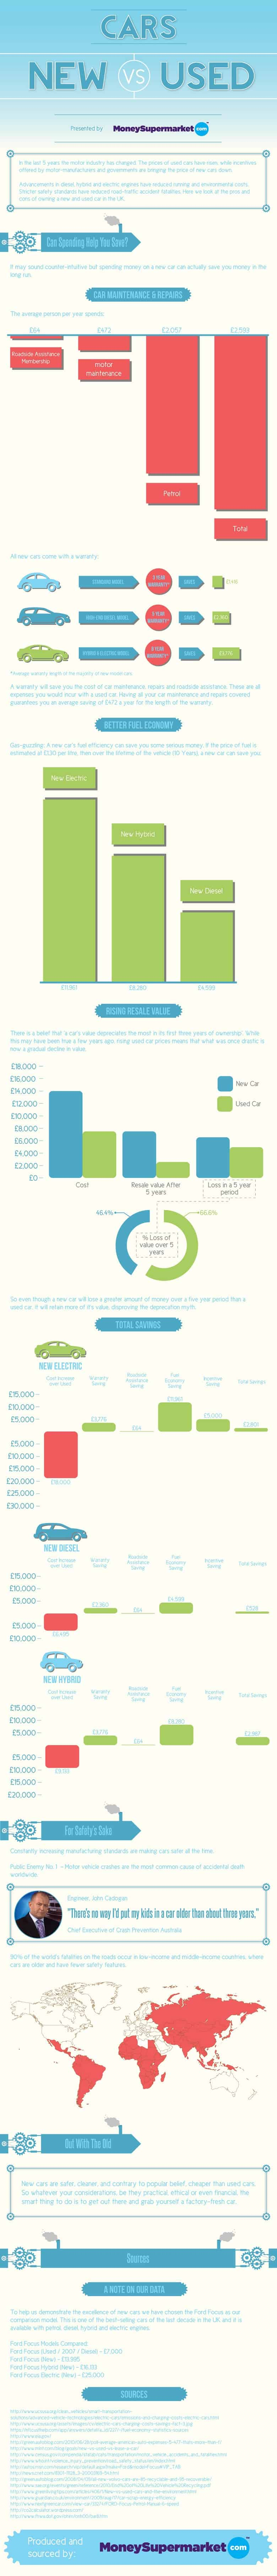 Which cars save you more money